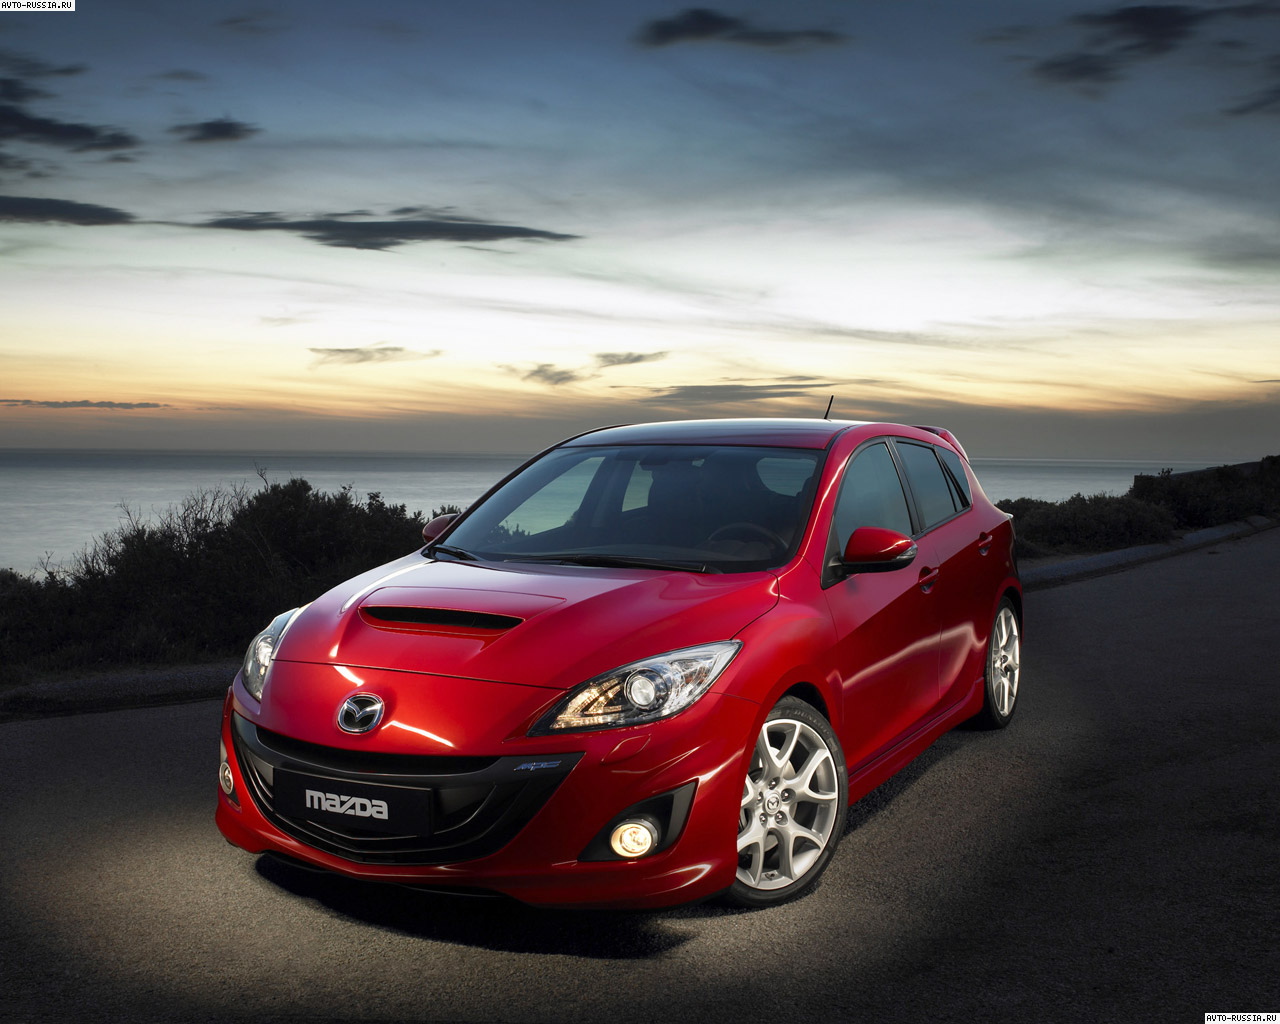 2014 mazda 3 mps mazda mps 2014 mazda. Black Bedroom Furniture Sets. Home Design Ideas